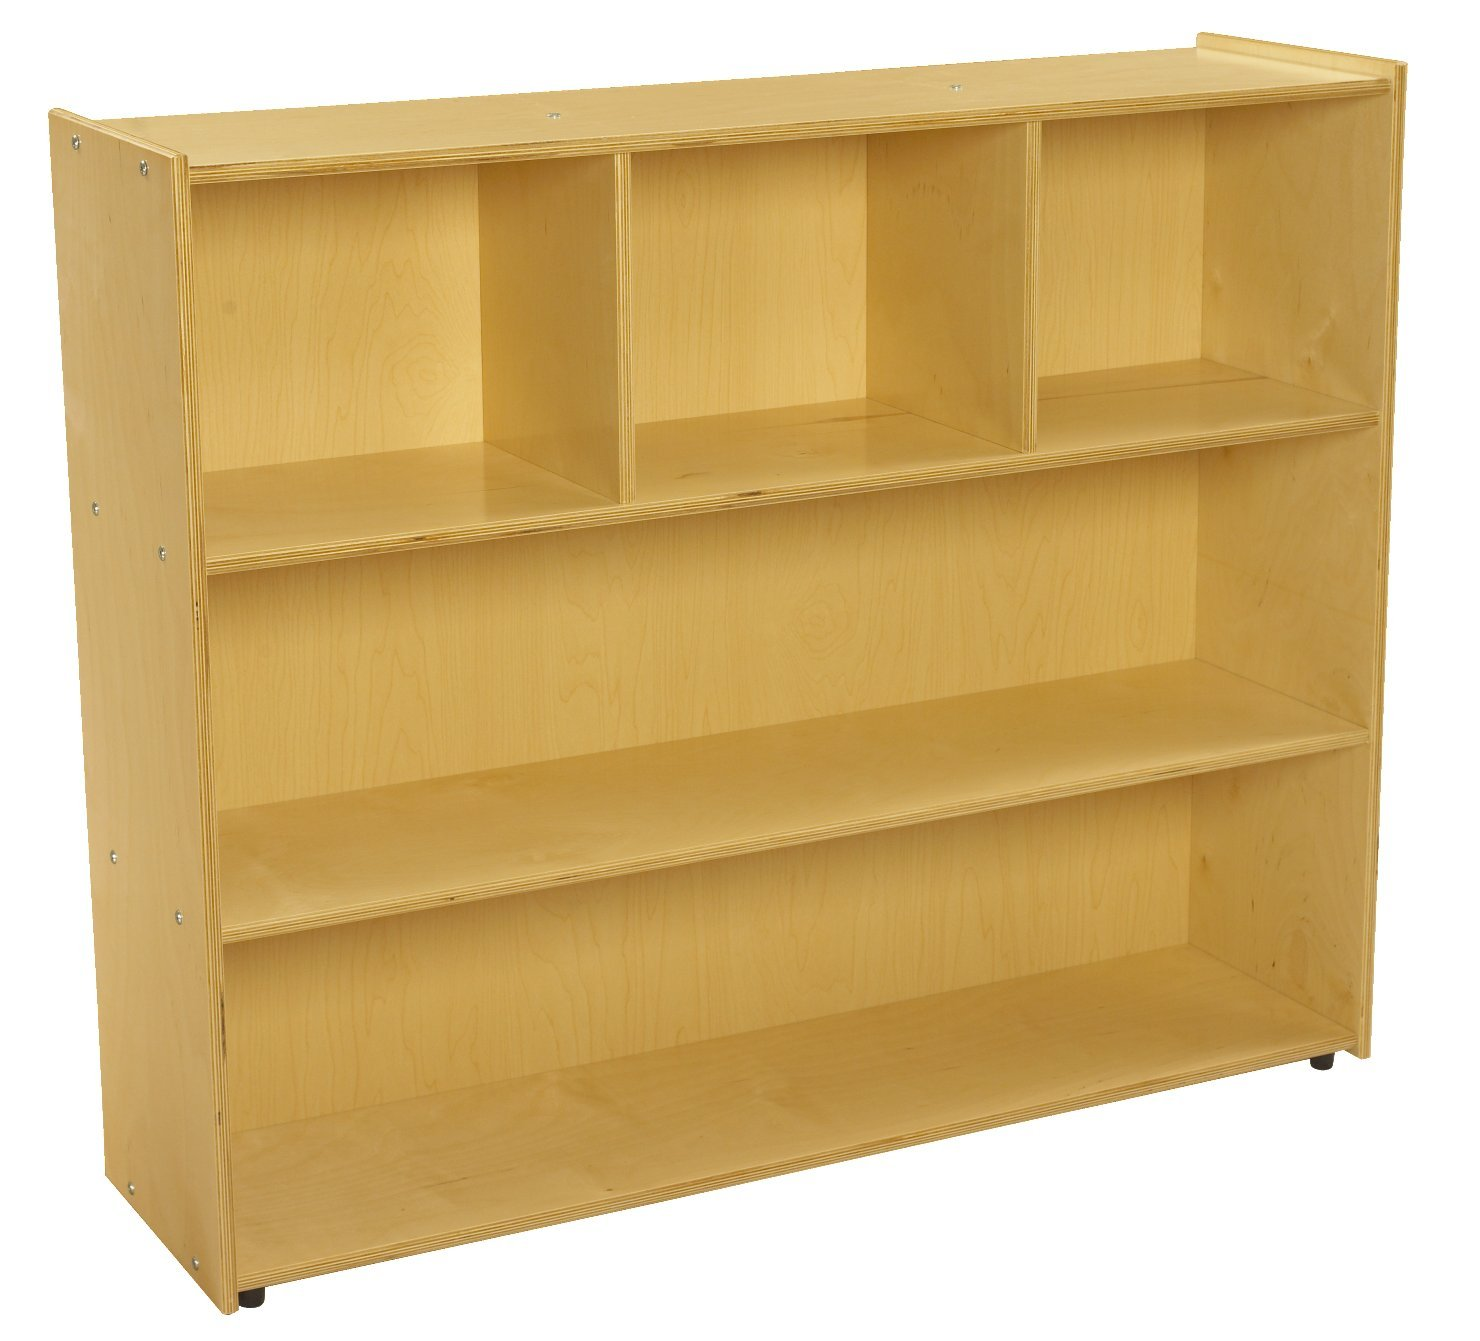 Childcraft 1526308 ABC Furnishings 3-Shelf Storage Unit, 40'' Height, 13'' Width, 48'' Length, Natural Wood by Childcraft